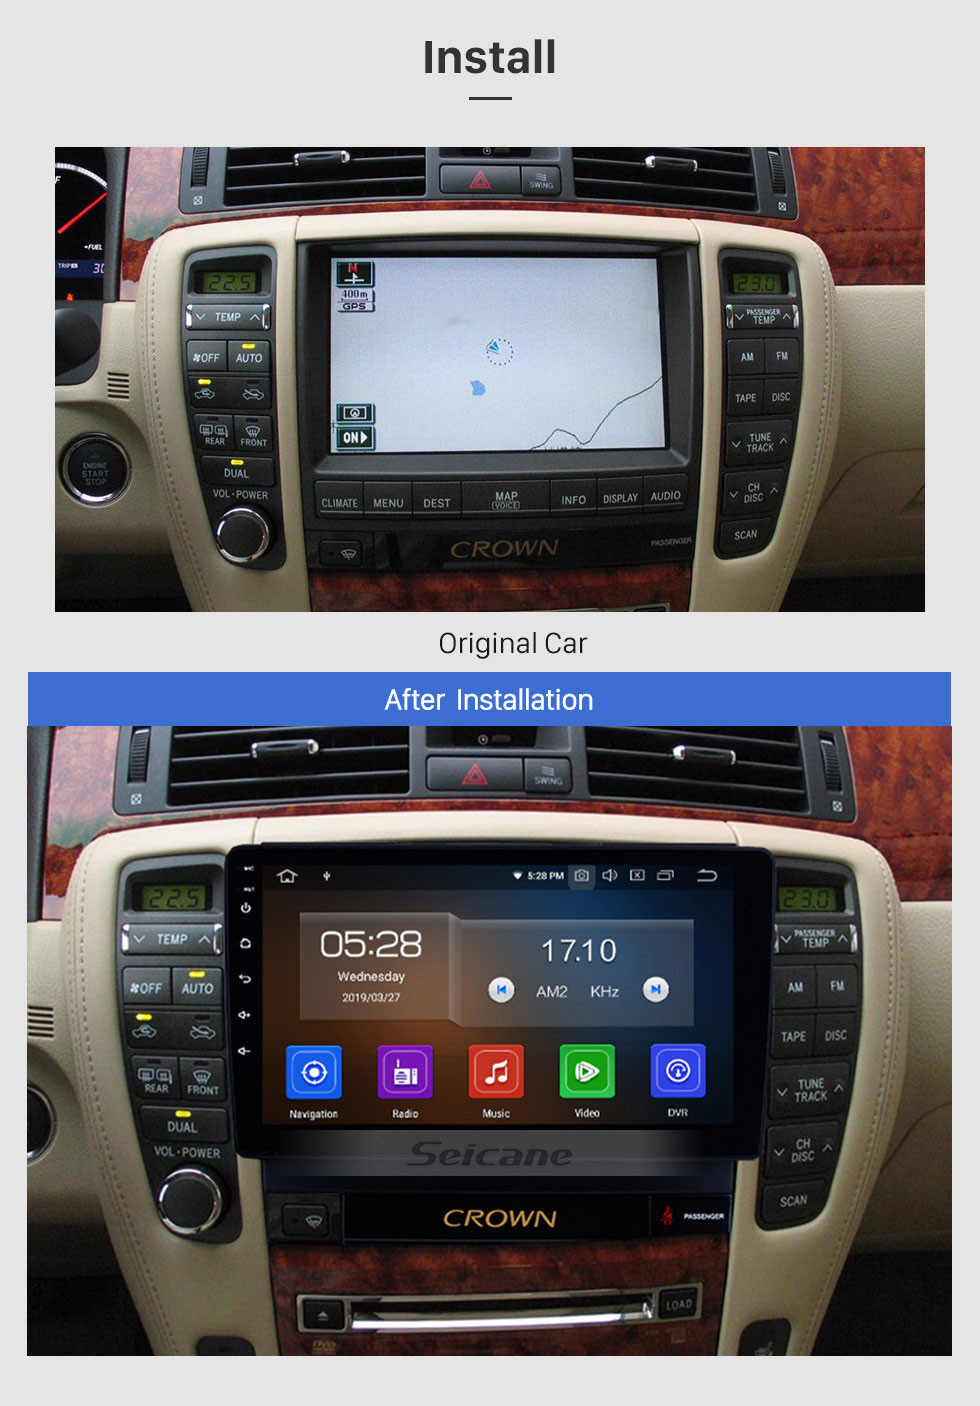 Seicane 9 inch 2010 2011 2012 2013 2014 Toyota old crown LHD Android 10.0 HD Touchscreen auto stereo GPS Navigation System Bluetooth FM/AM Radio Support 3G/4G WIFI Steering Wheel Control DVR OBD II